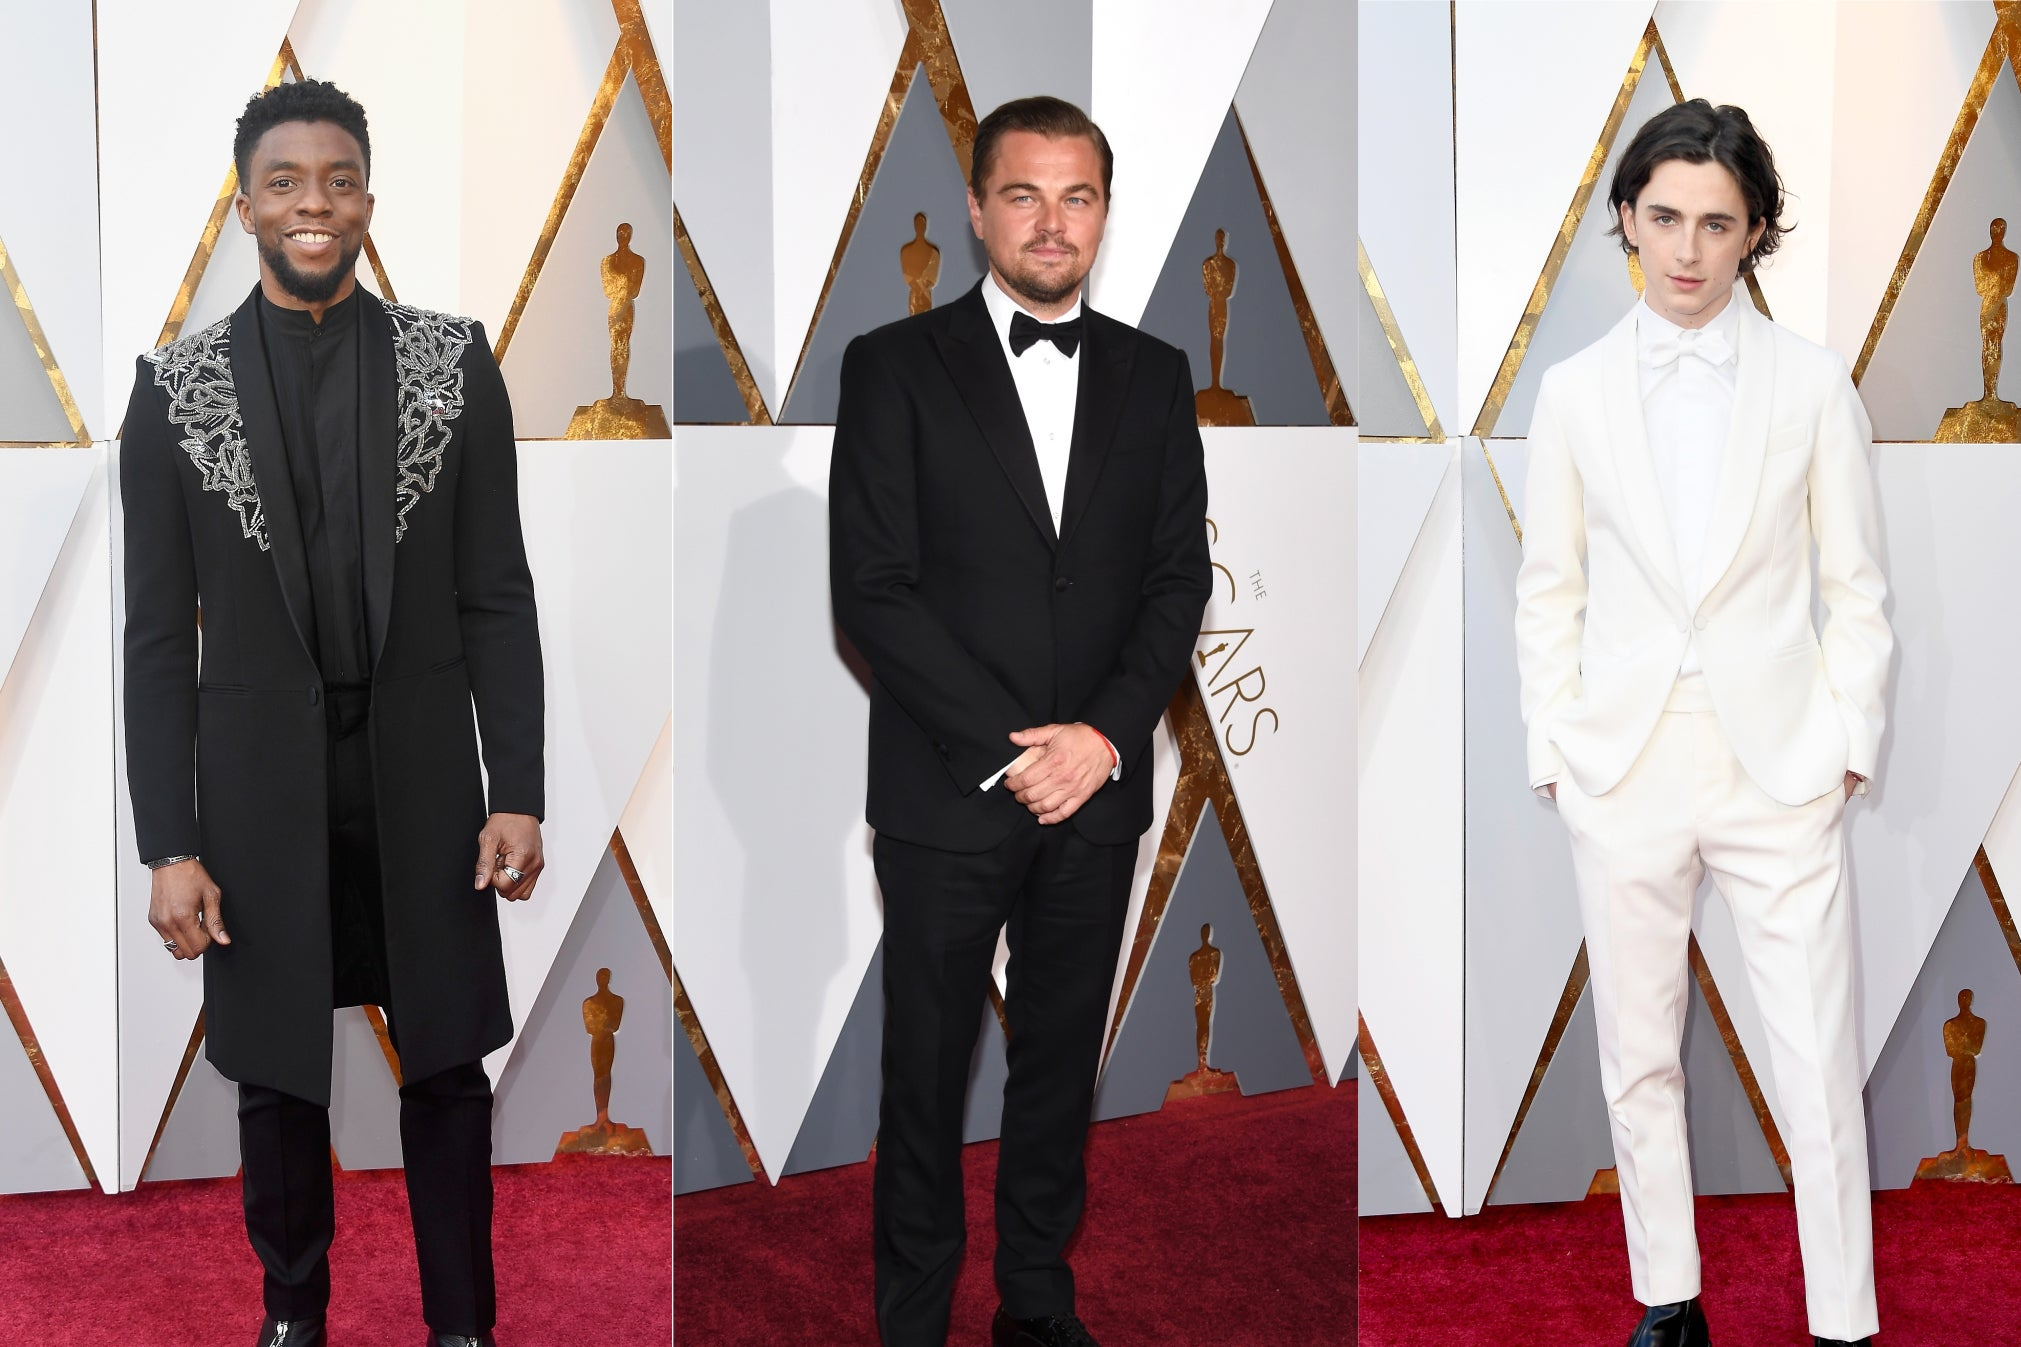 The best-dressed men ever at the Oscars